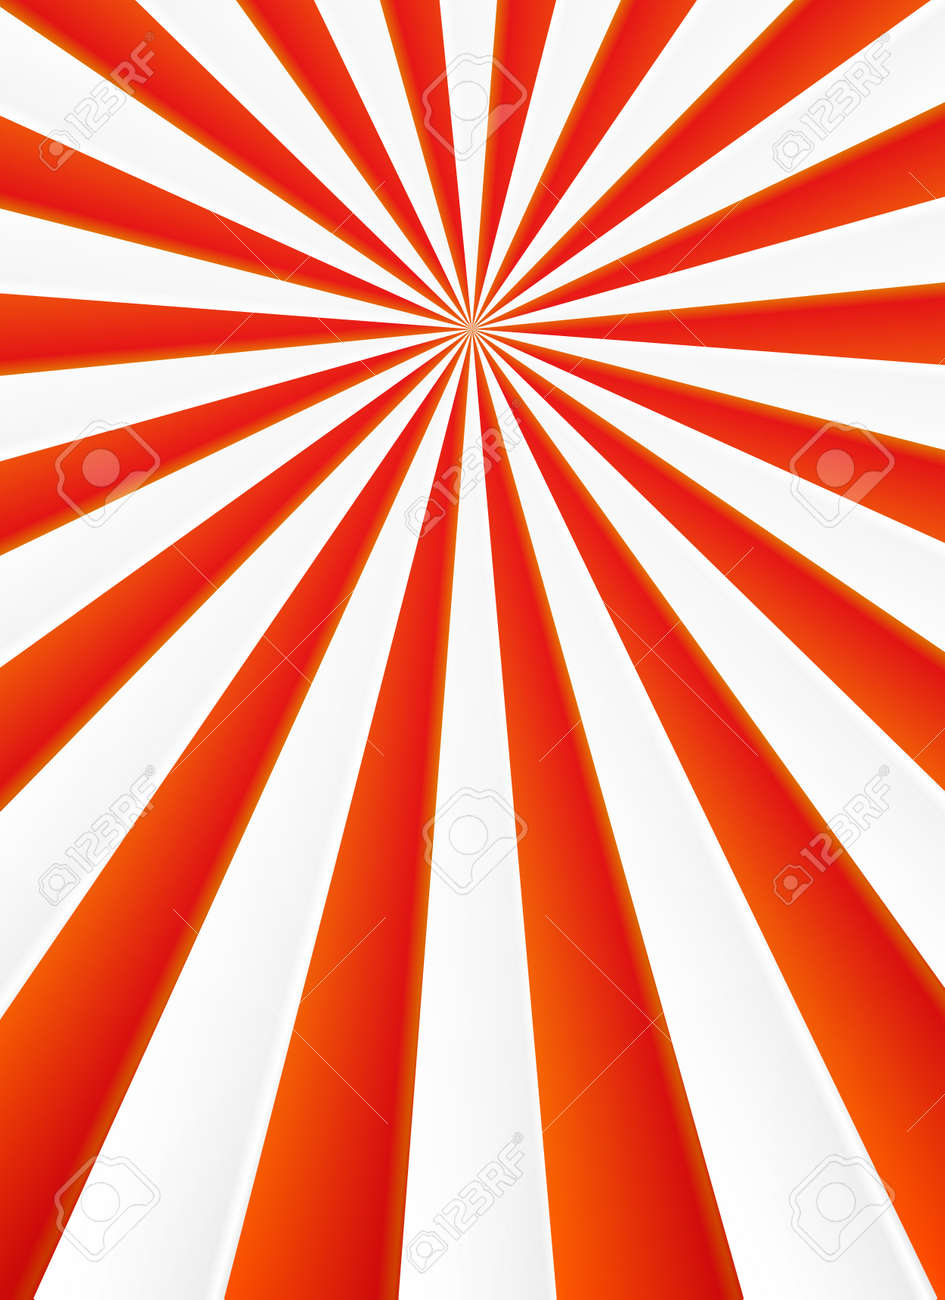 red and white rays vector abstract circus poster background royalty